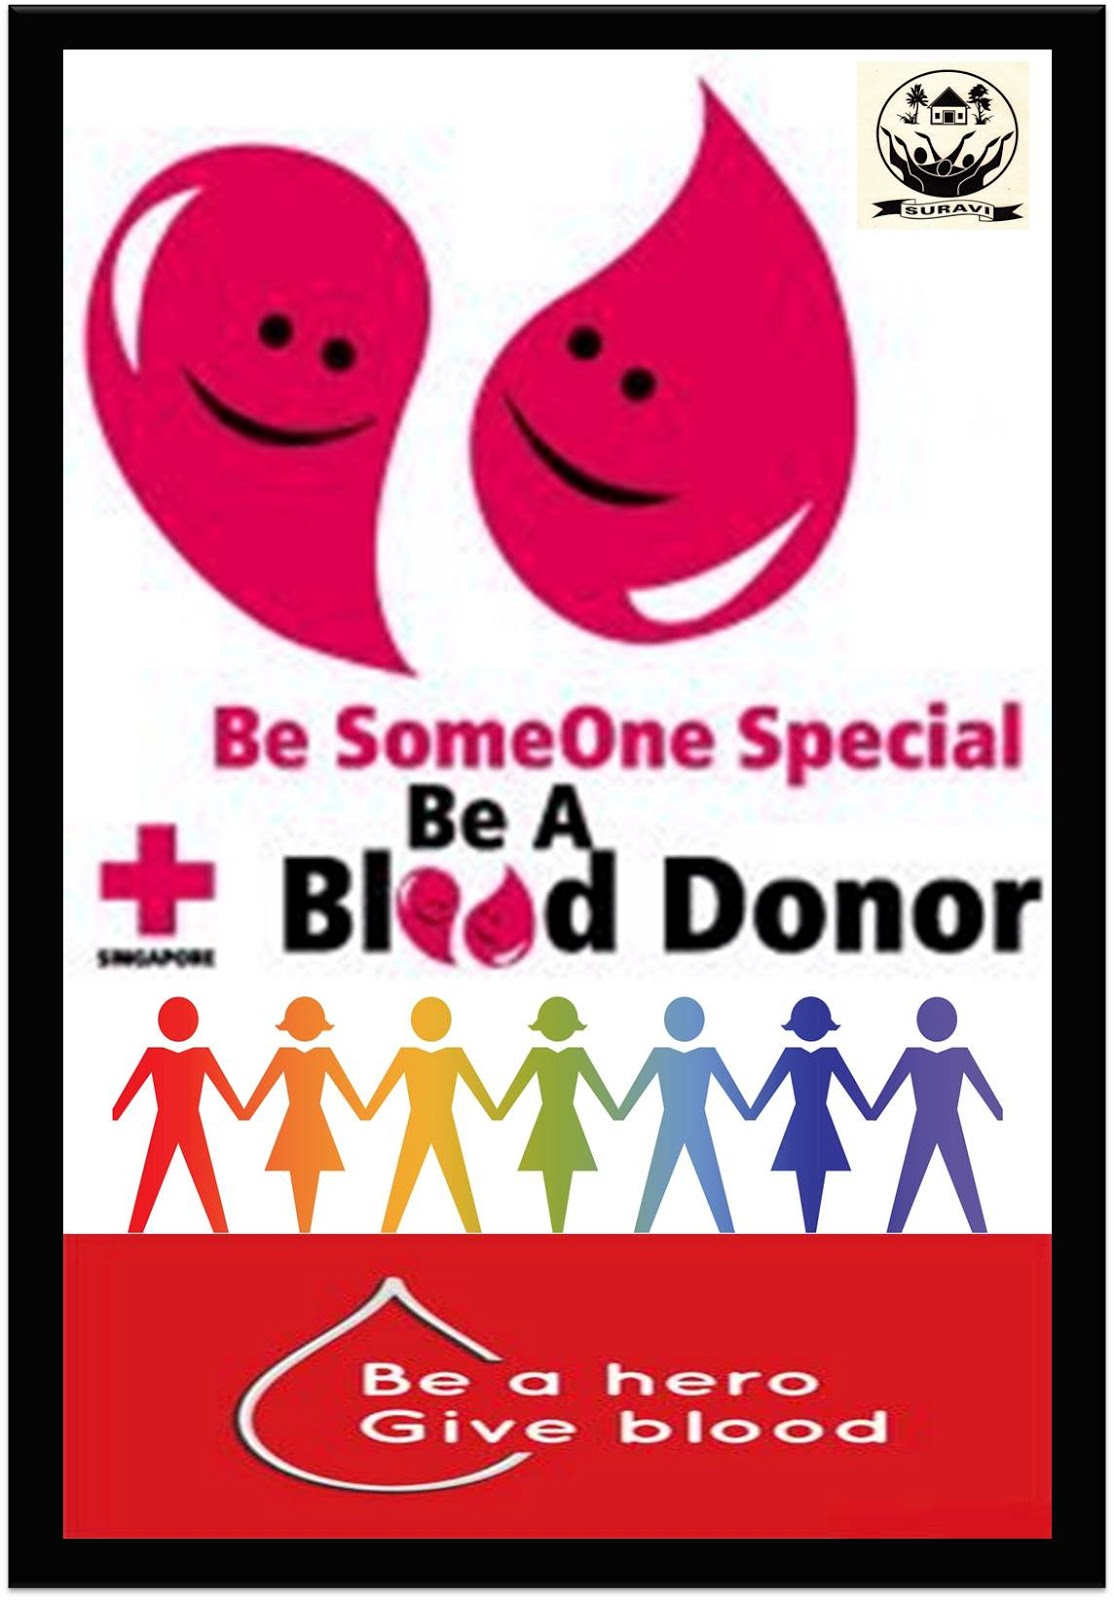 donor services department Donor services department at 1-800-474-8628 isi's easy giving plan egp form: file size: 169 kb: file type: pdf: download file to learn about and sign up for isi.